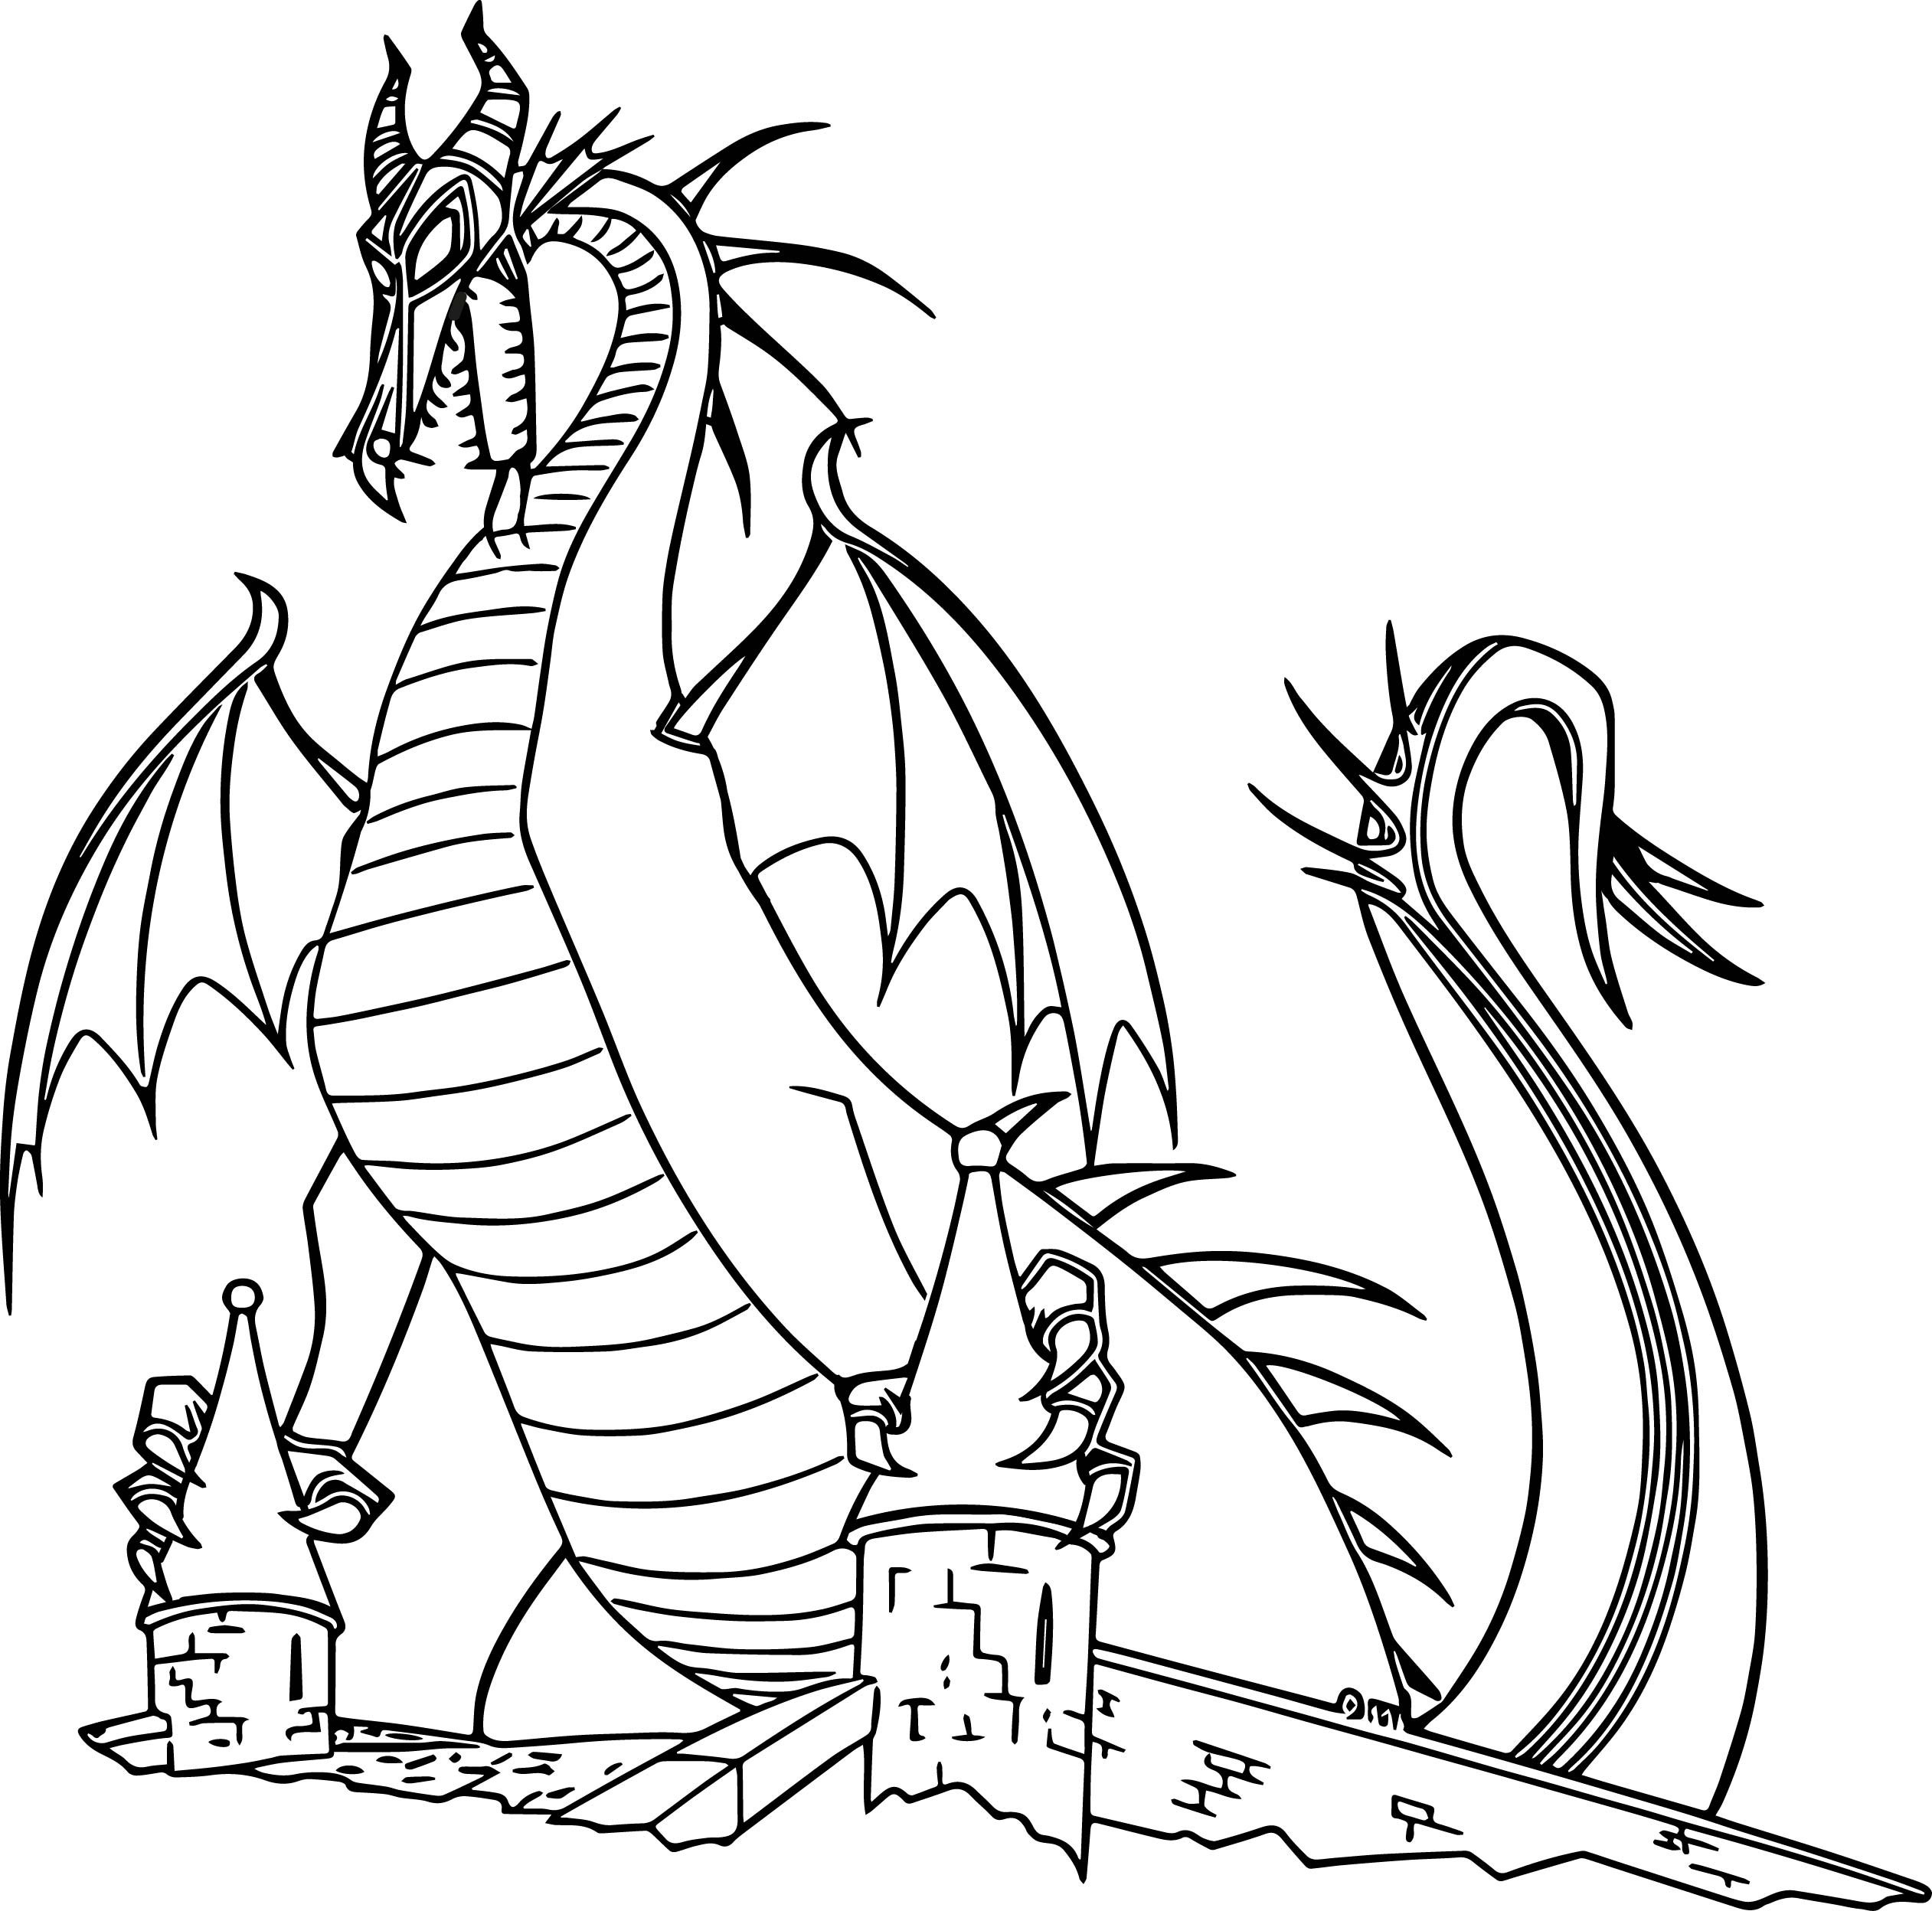 dragon coloring pages flying dragon coloring pages free download on clipartmag pages dragon coloring